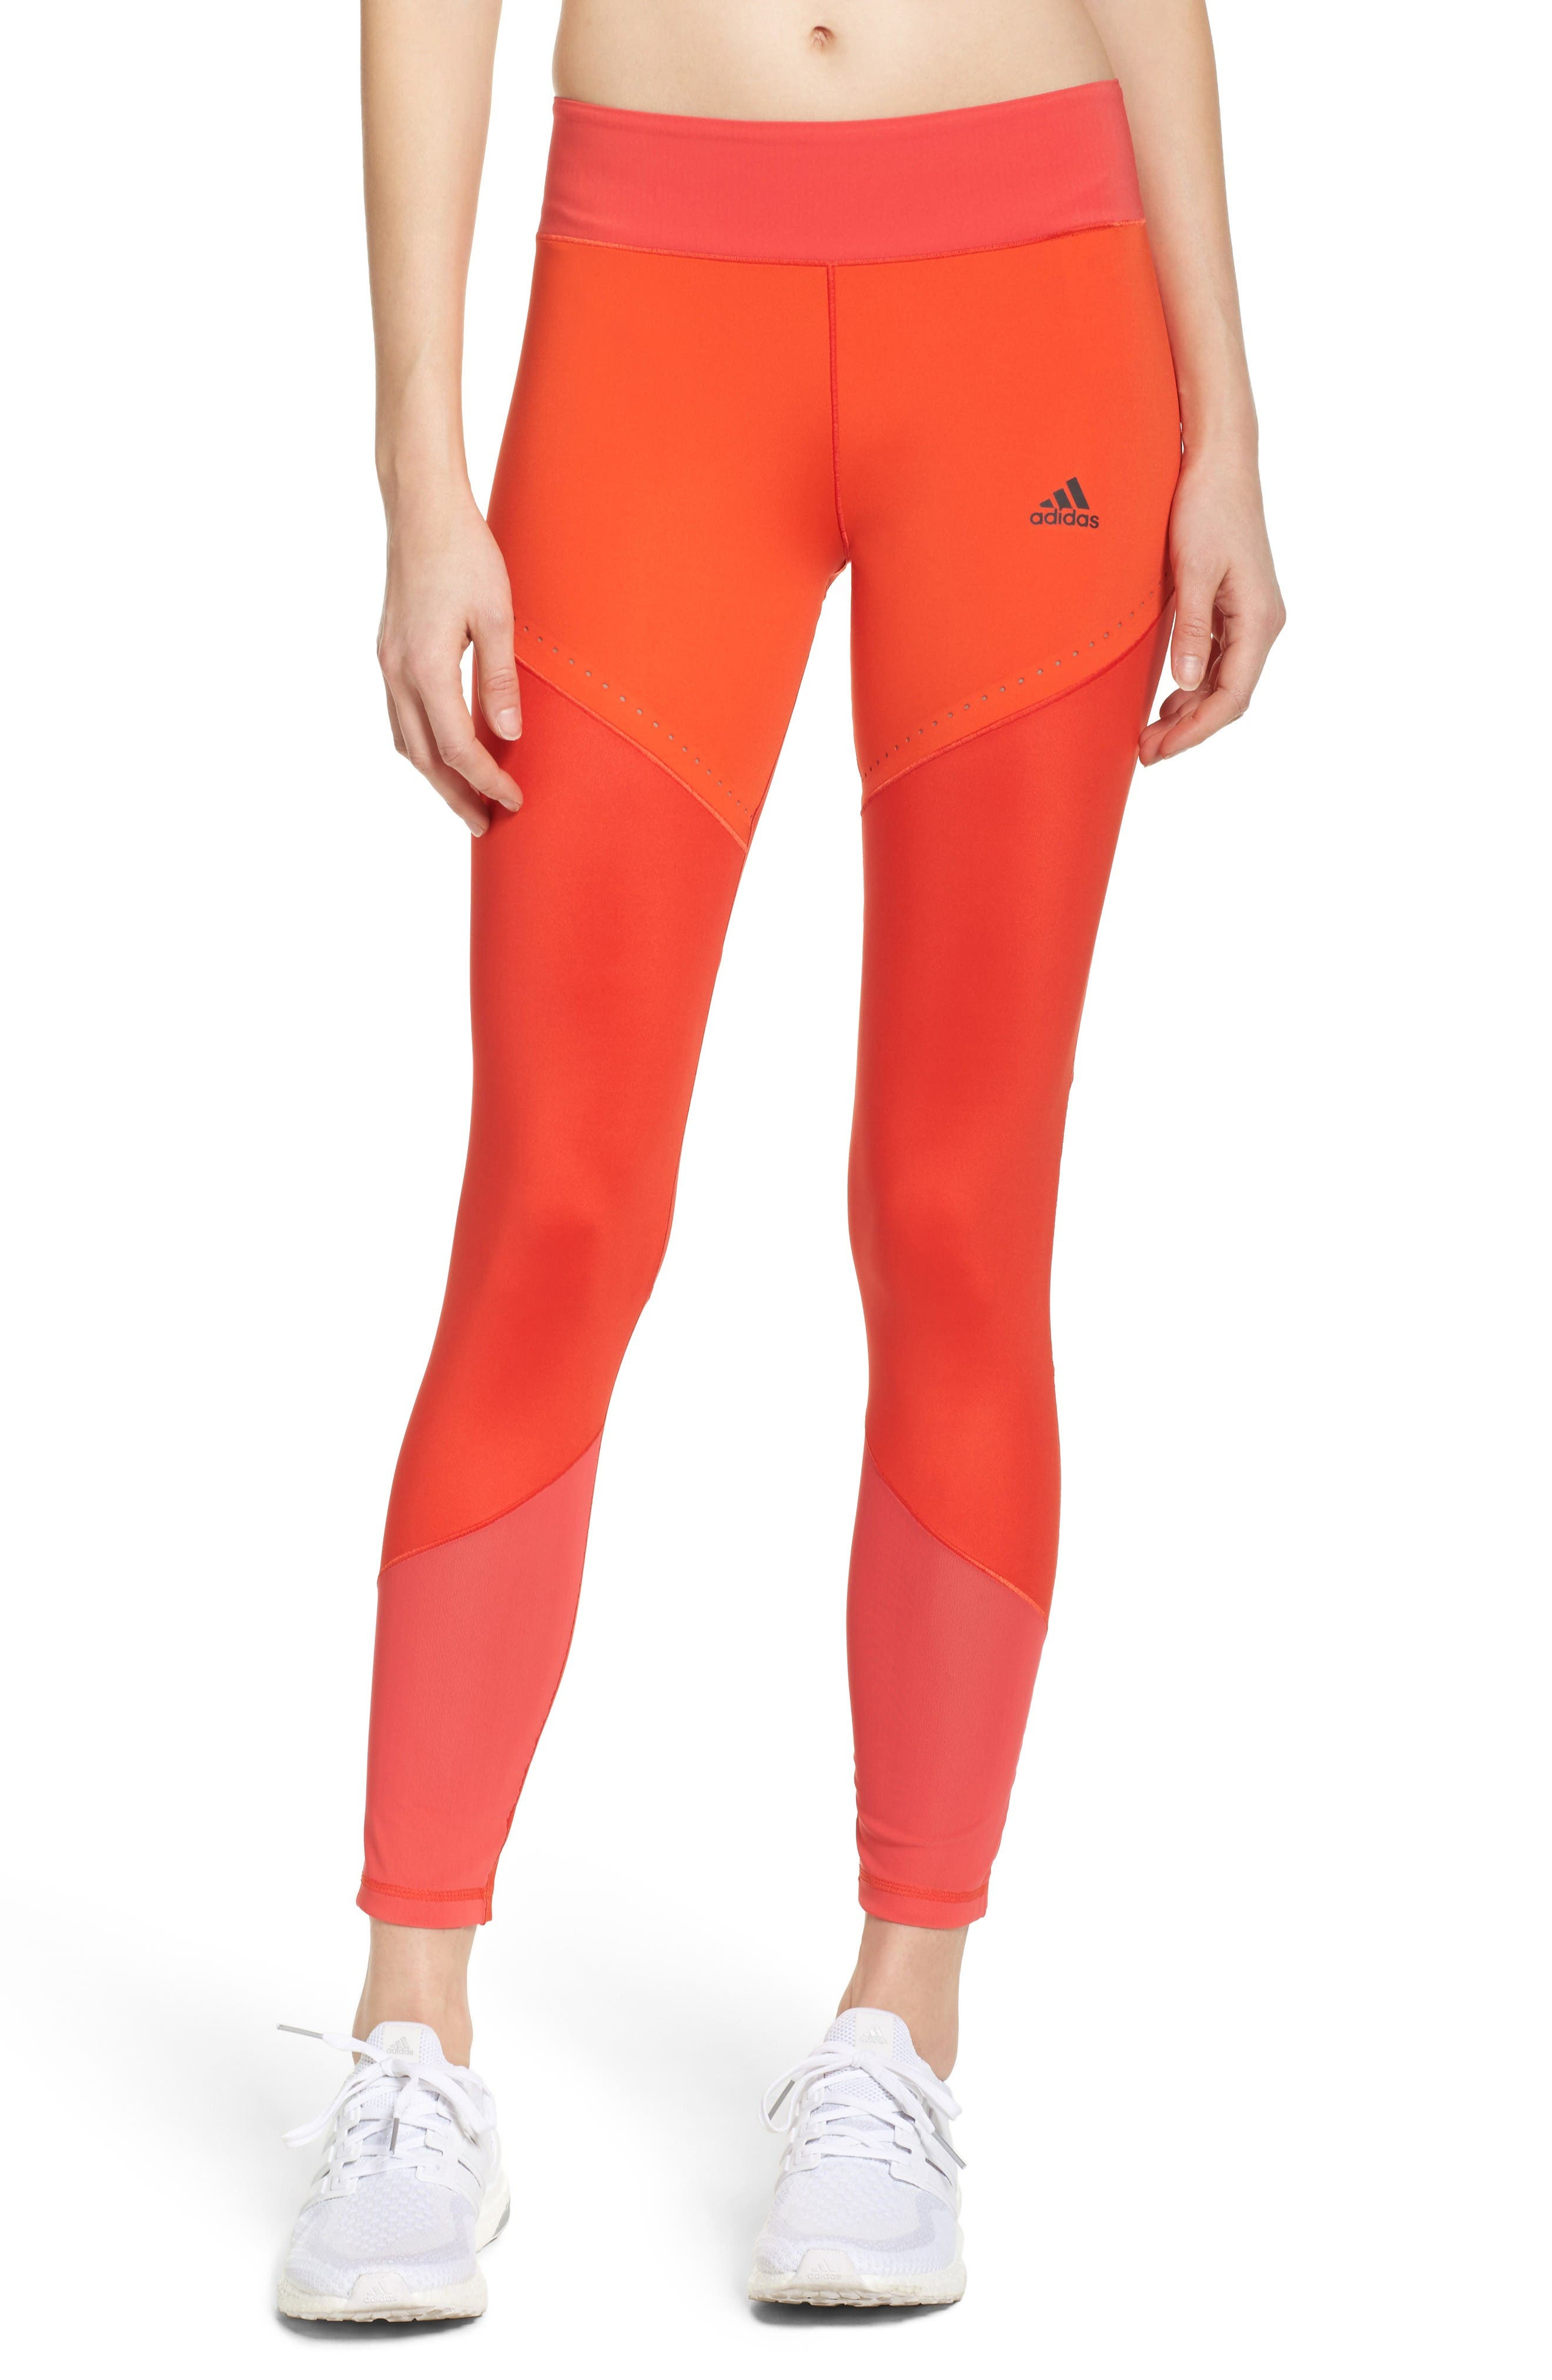 Main Image - adidas Wow Drop 1 Climalite® Tights